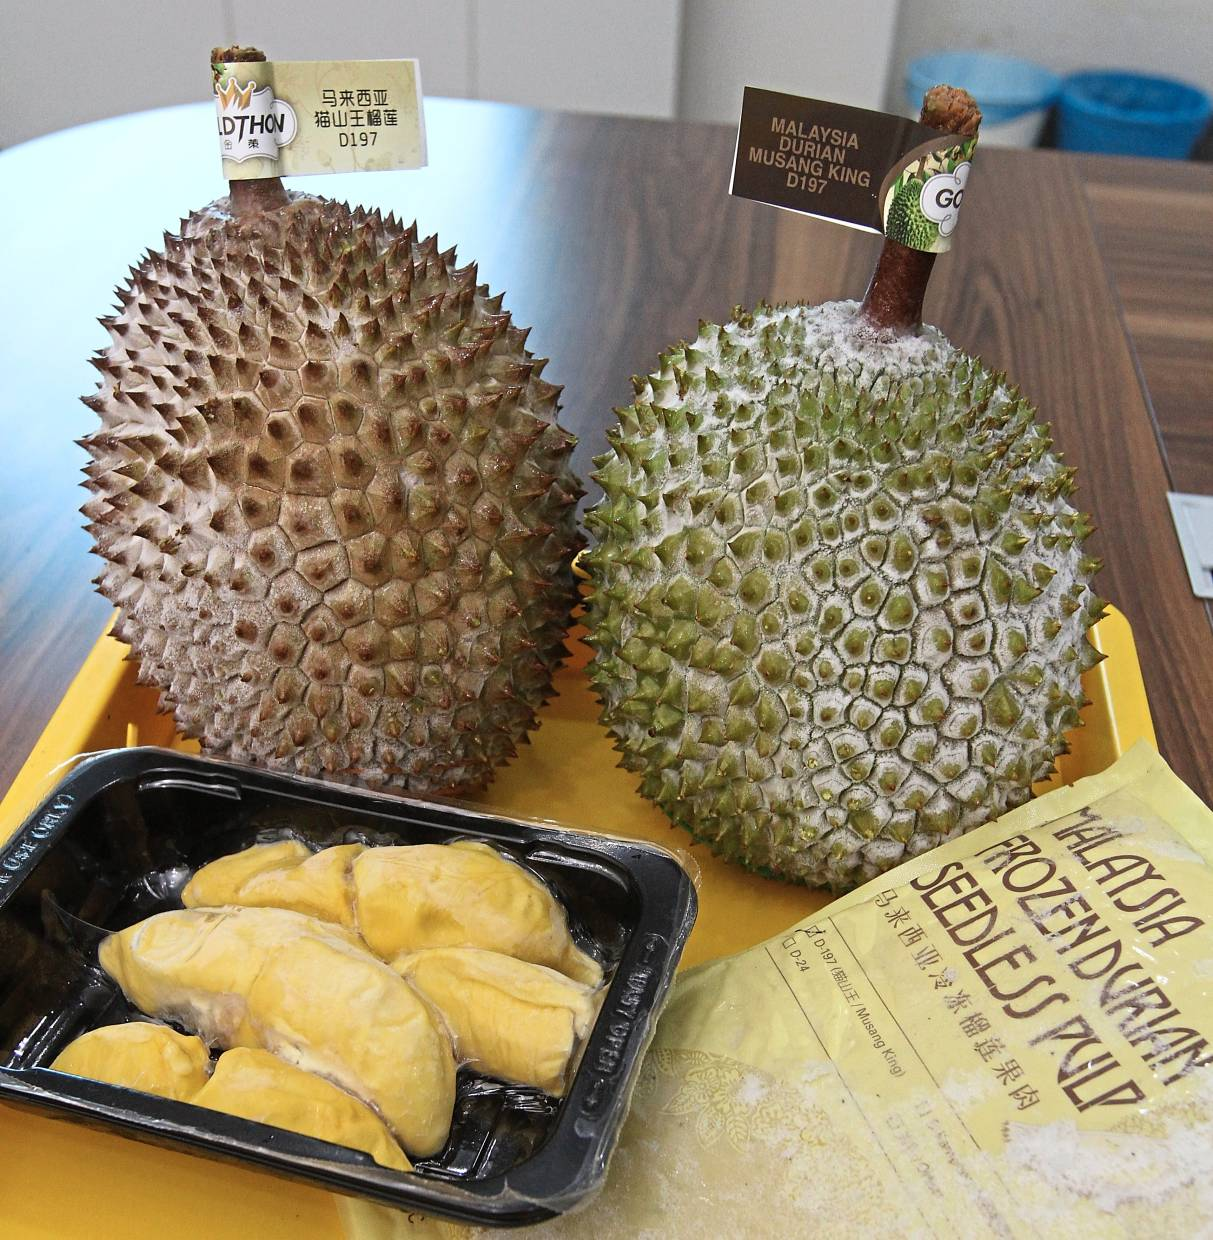 Fruitful endeavour: The durian exporter has enjoyed good growth so far with its fruits and ingredient supply business.